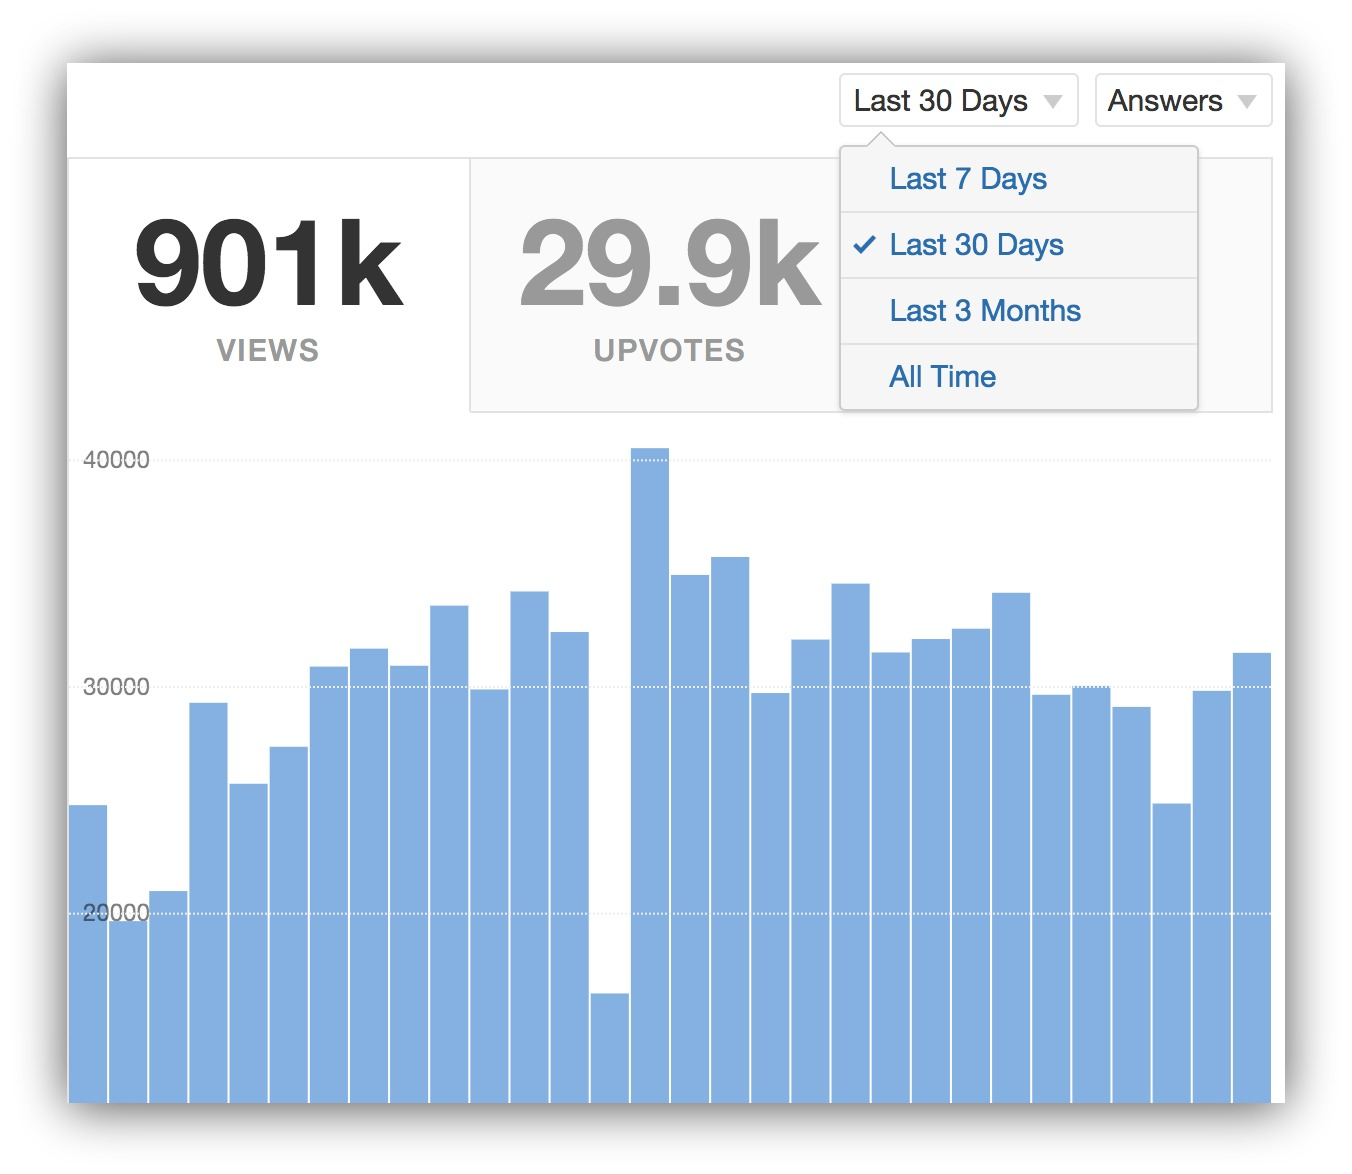 How To Get Massive Traffic From Quora (1,000s Of Leads In Months)